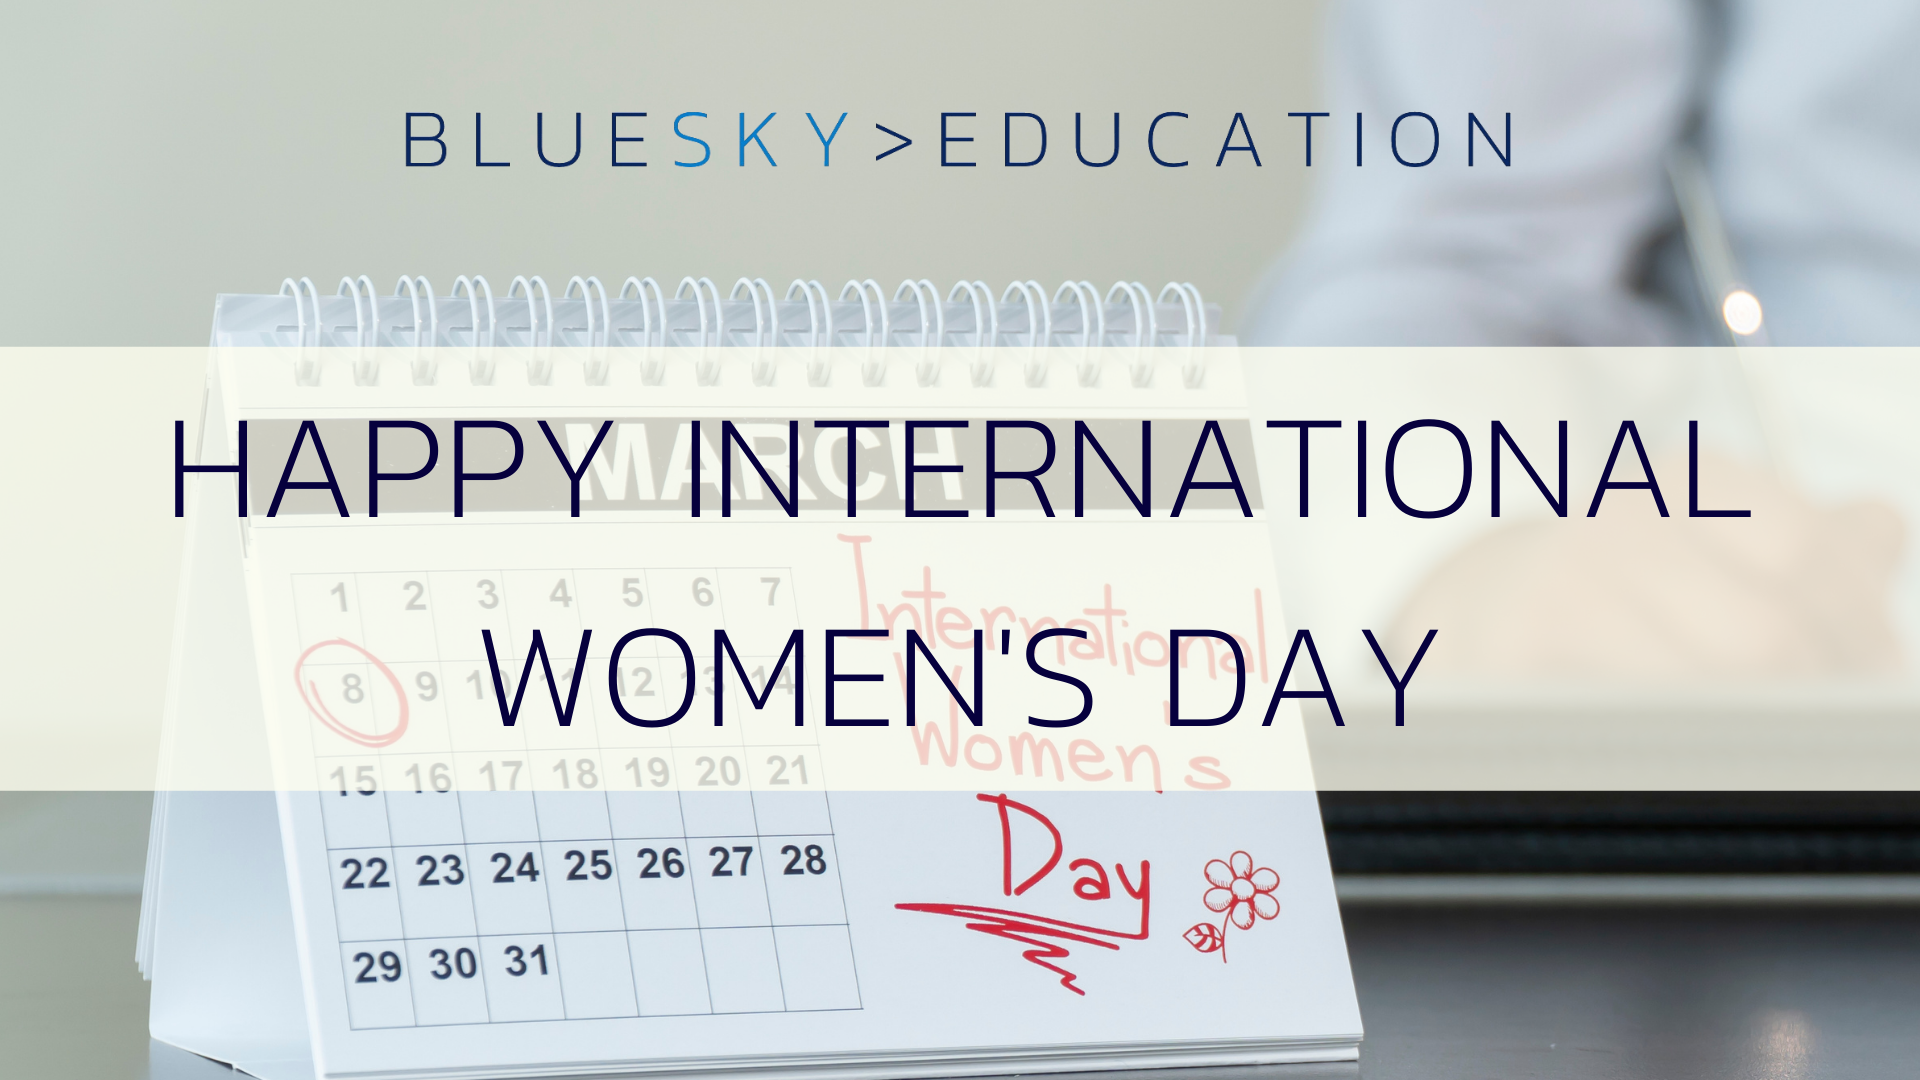 International Women's Day 2021 What does it mean to BlueSky Education?